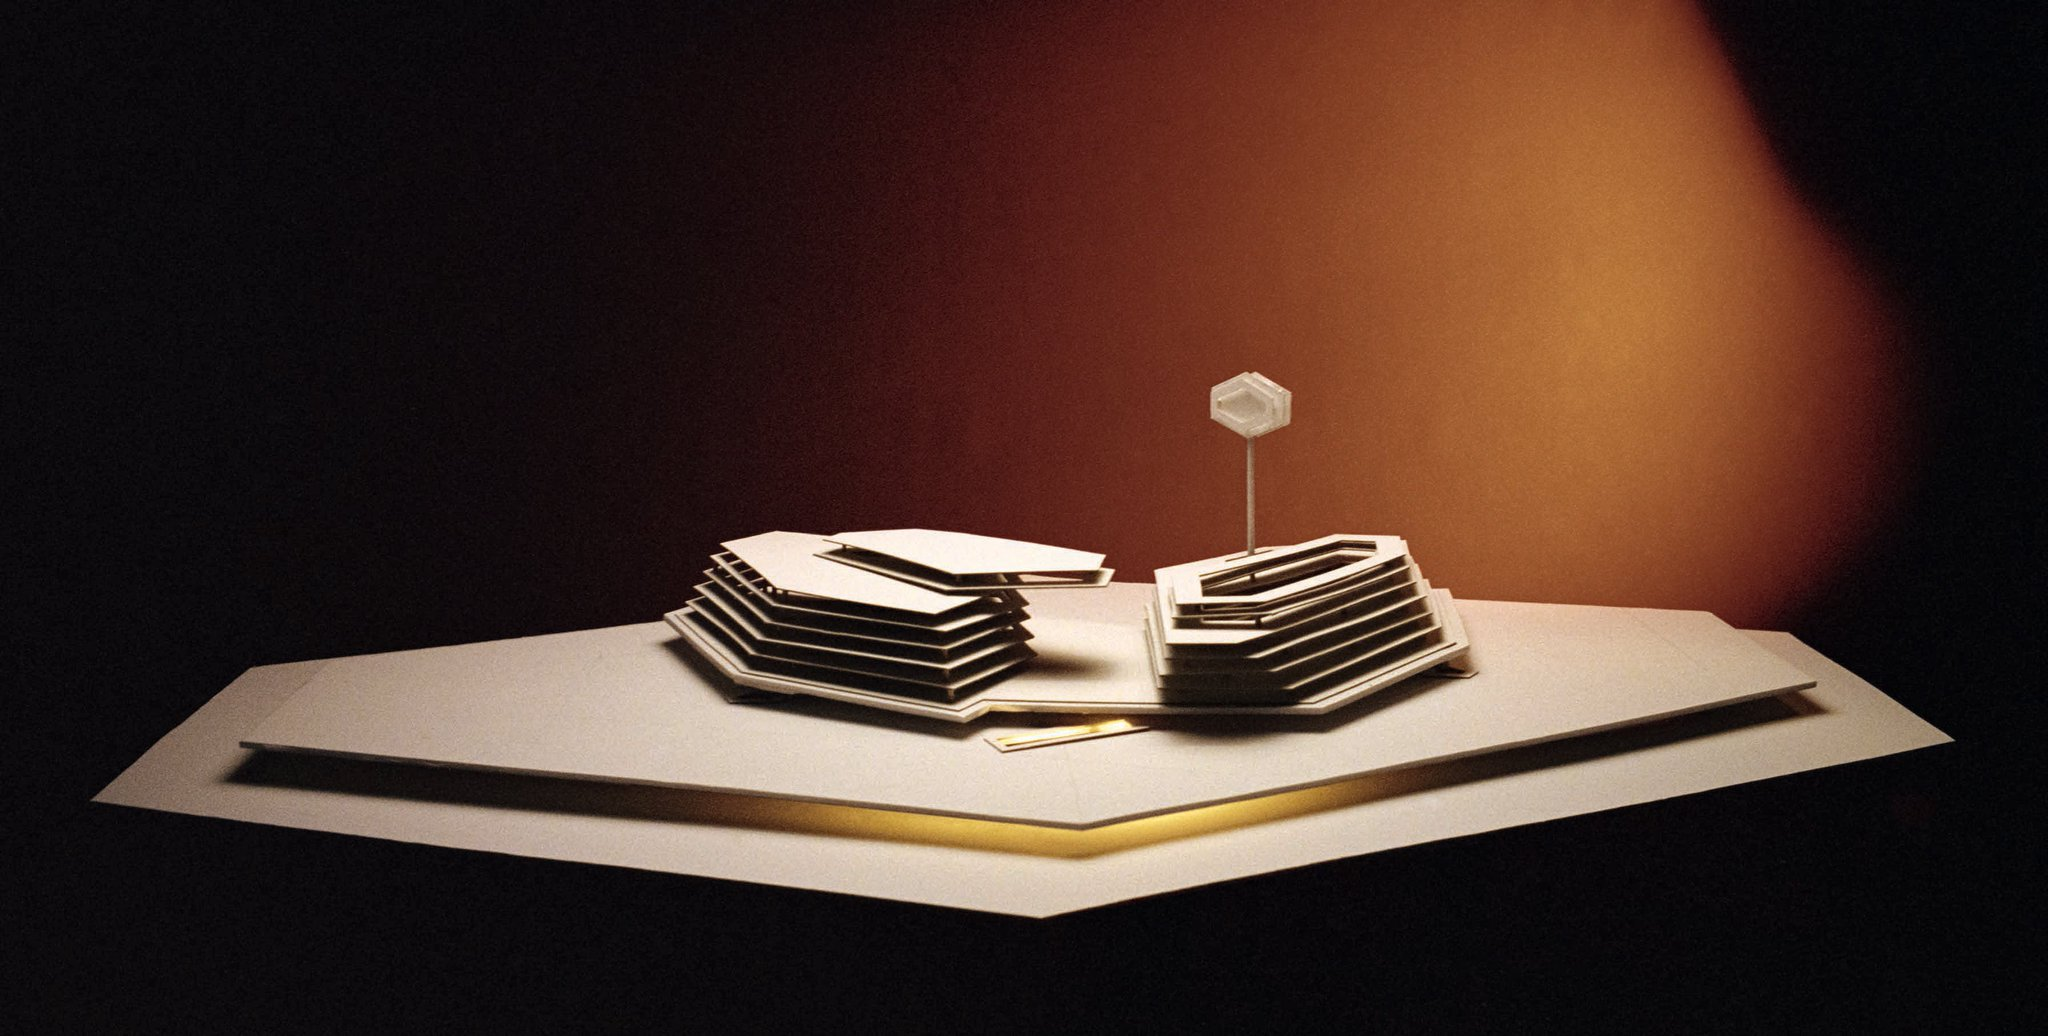 tranquility base hotel and casino listen